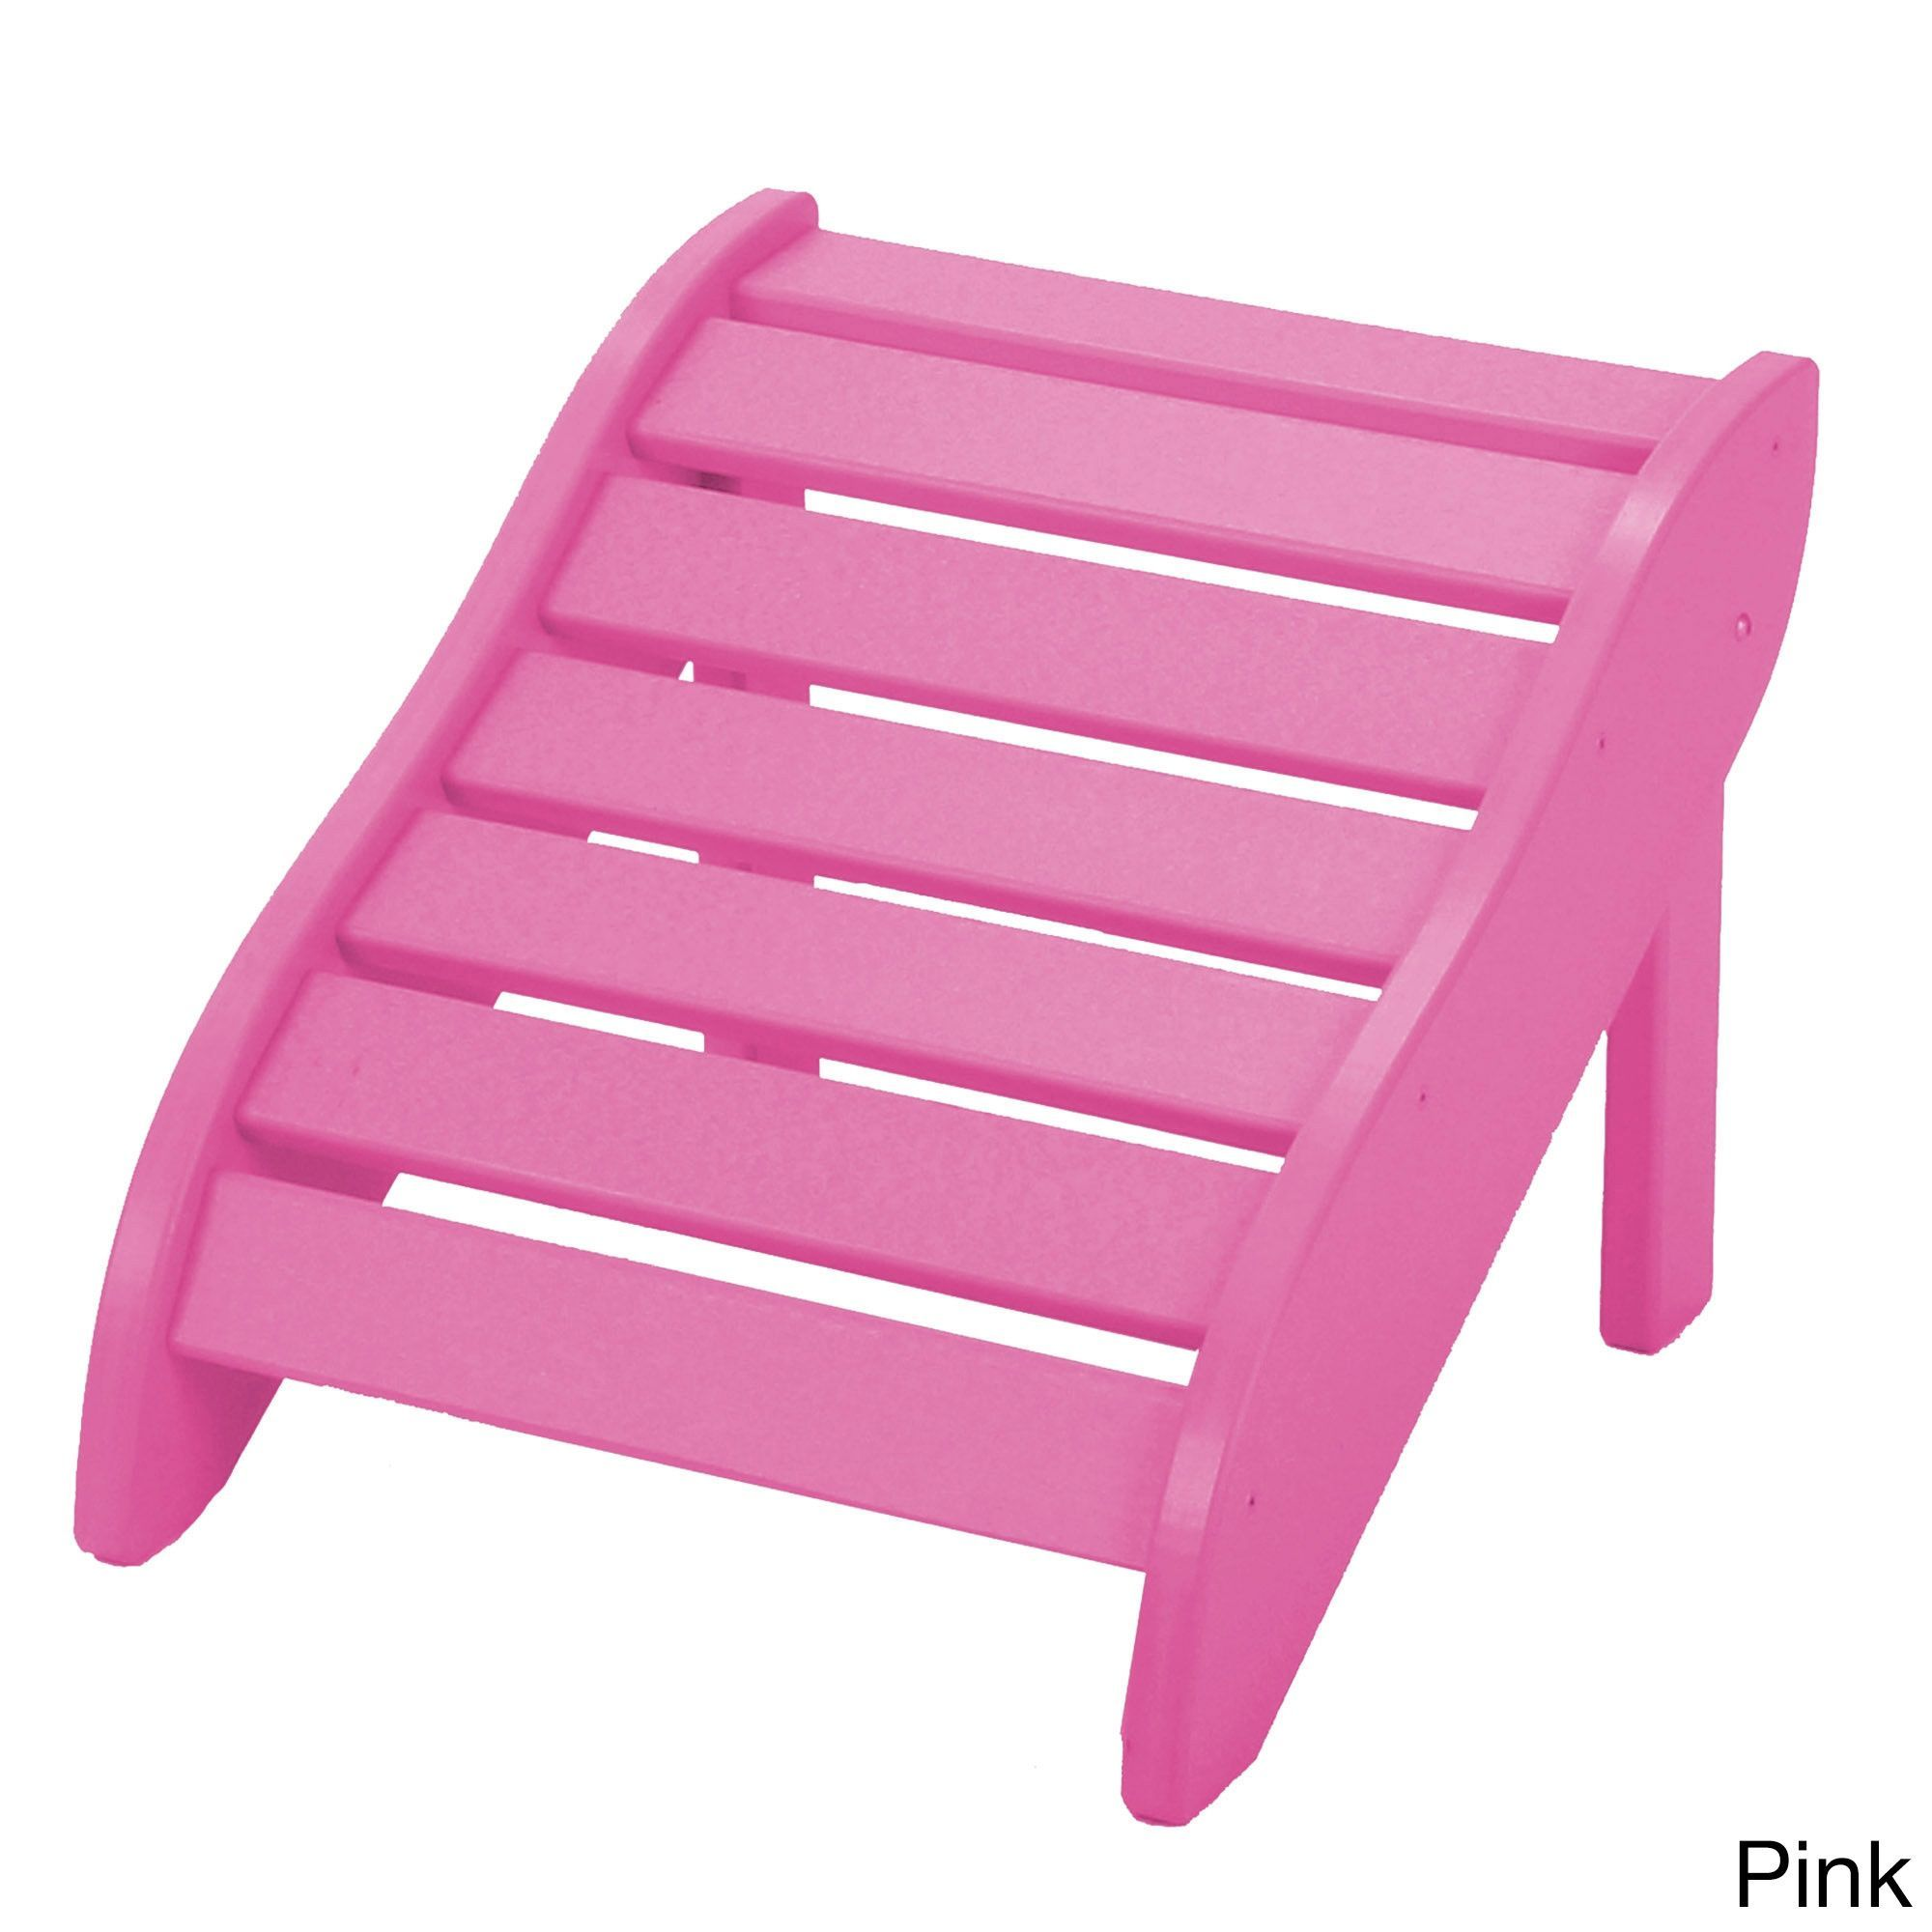 Durawood Gartenmöbel Pawley S Island Foot Rest Pink Size Single Patio Furniture